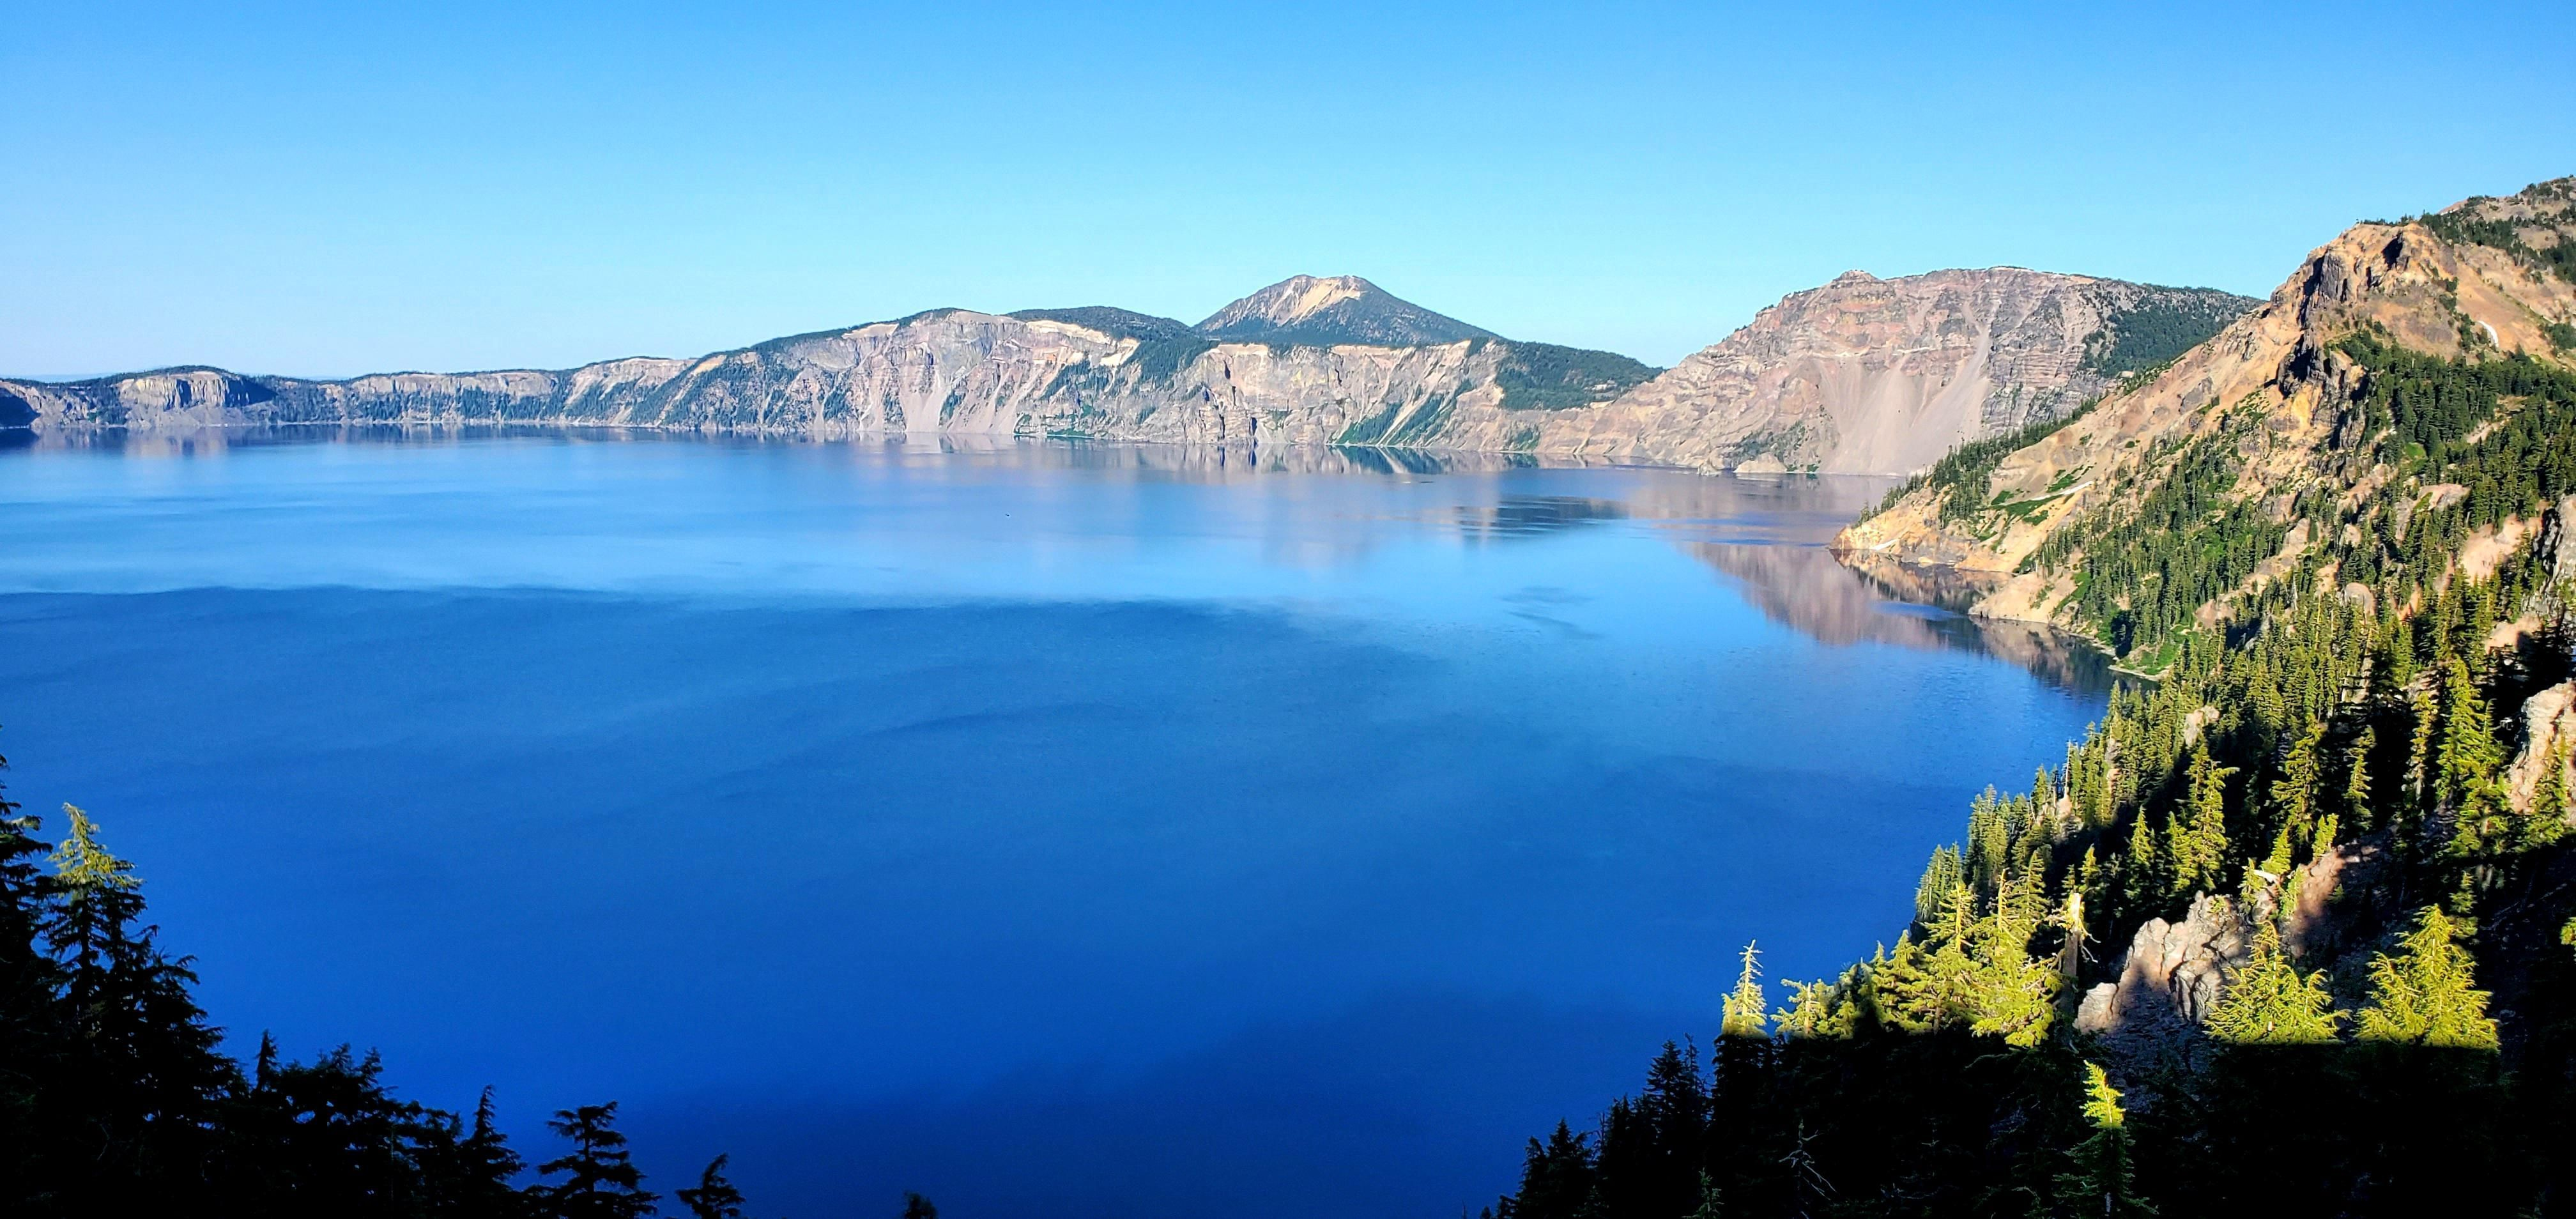 I am amazed by the blues of the water @ Crater Lake (Oregon). So worth the side-trip. #craterlakeoregon I am amazed by the blues of the water @ Crater Lake (Oregon). So worth the side-trip. #craterlakeoregon I am amazed by the blues of the water @ Crater Lake (Oregon). So worth the side-trip. #craterlakeoregon I am amazed by the blues of the water @ Crater Lake (Oregon). So worth the side-trip. #craterlakeoregon I am amazed by the blues of the water @ Crater Lake (Oregon). So worth the side-trip #craterlakeoregon